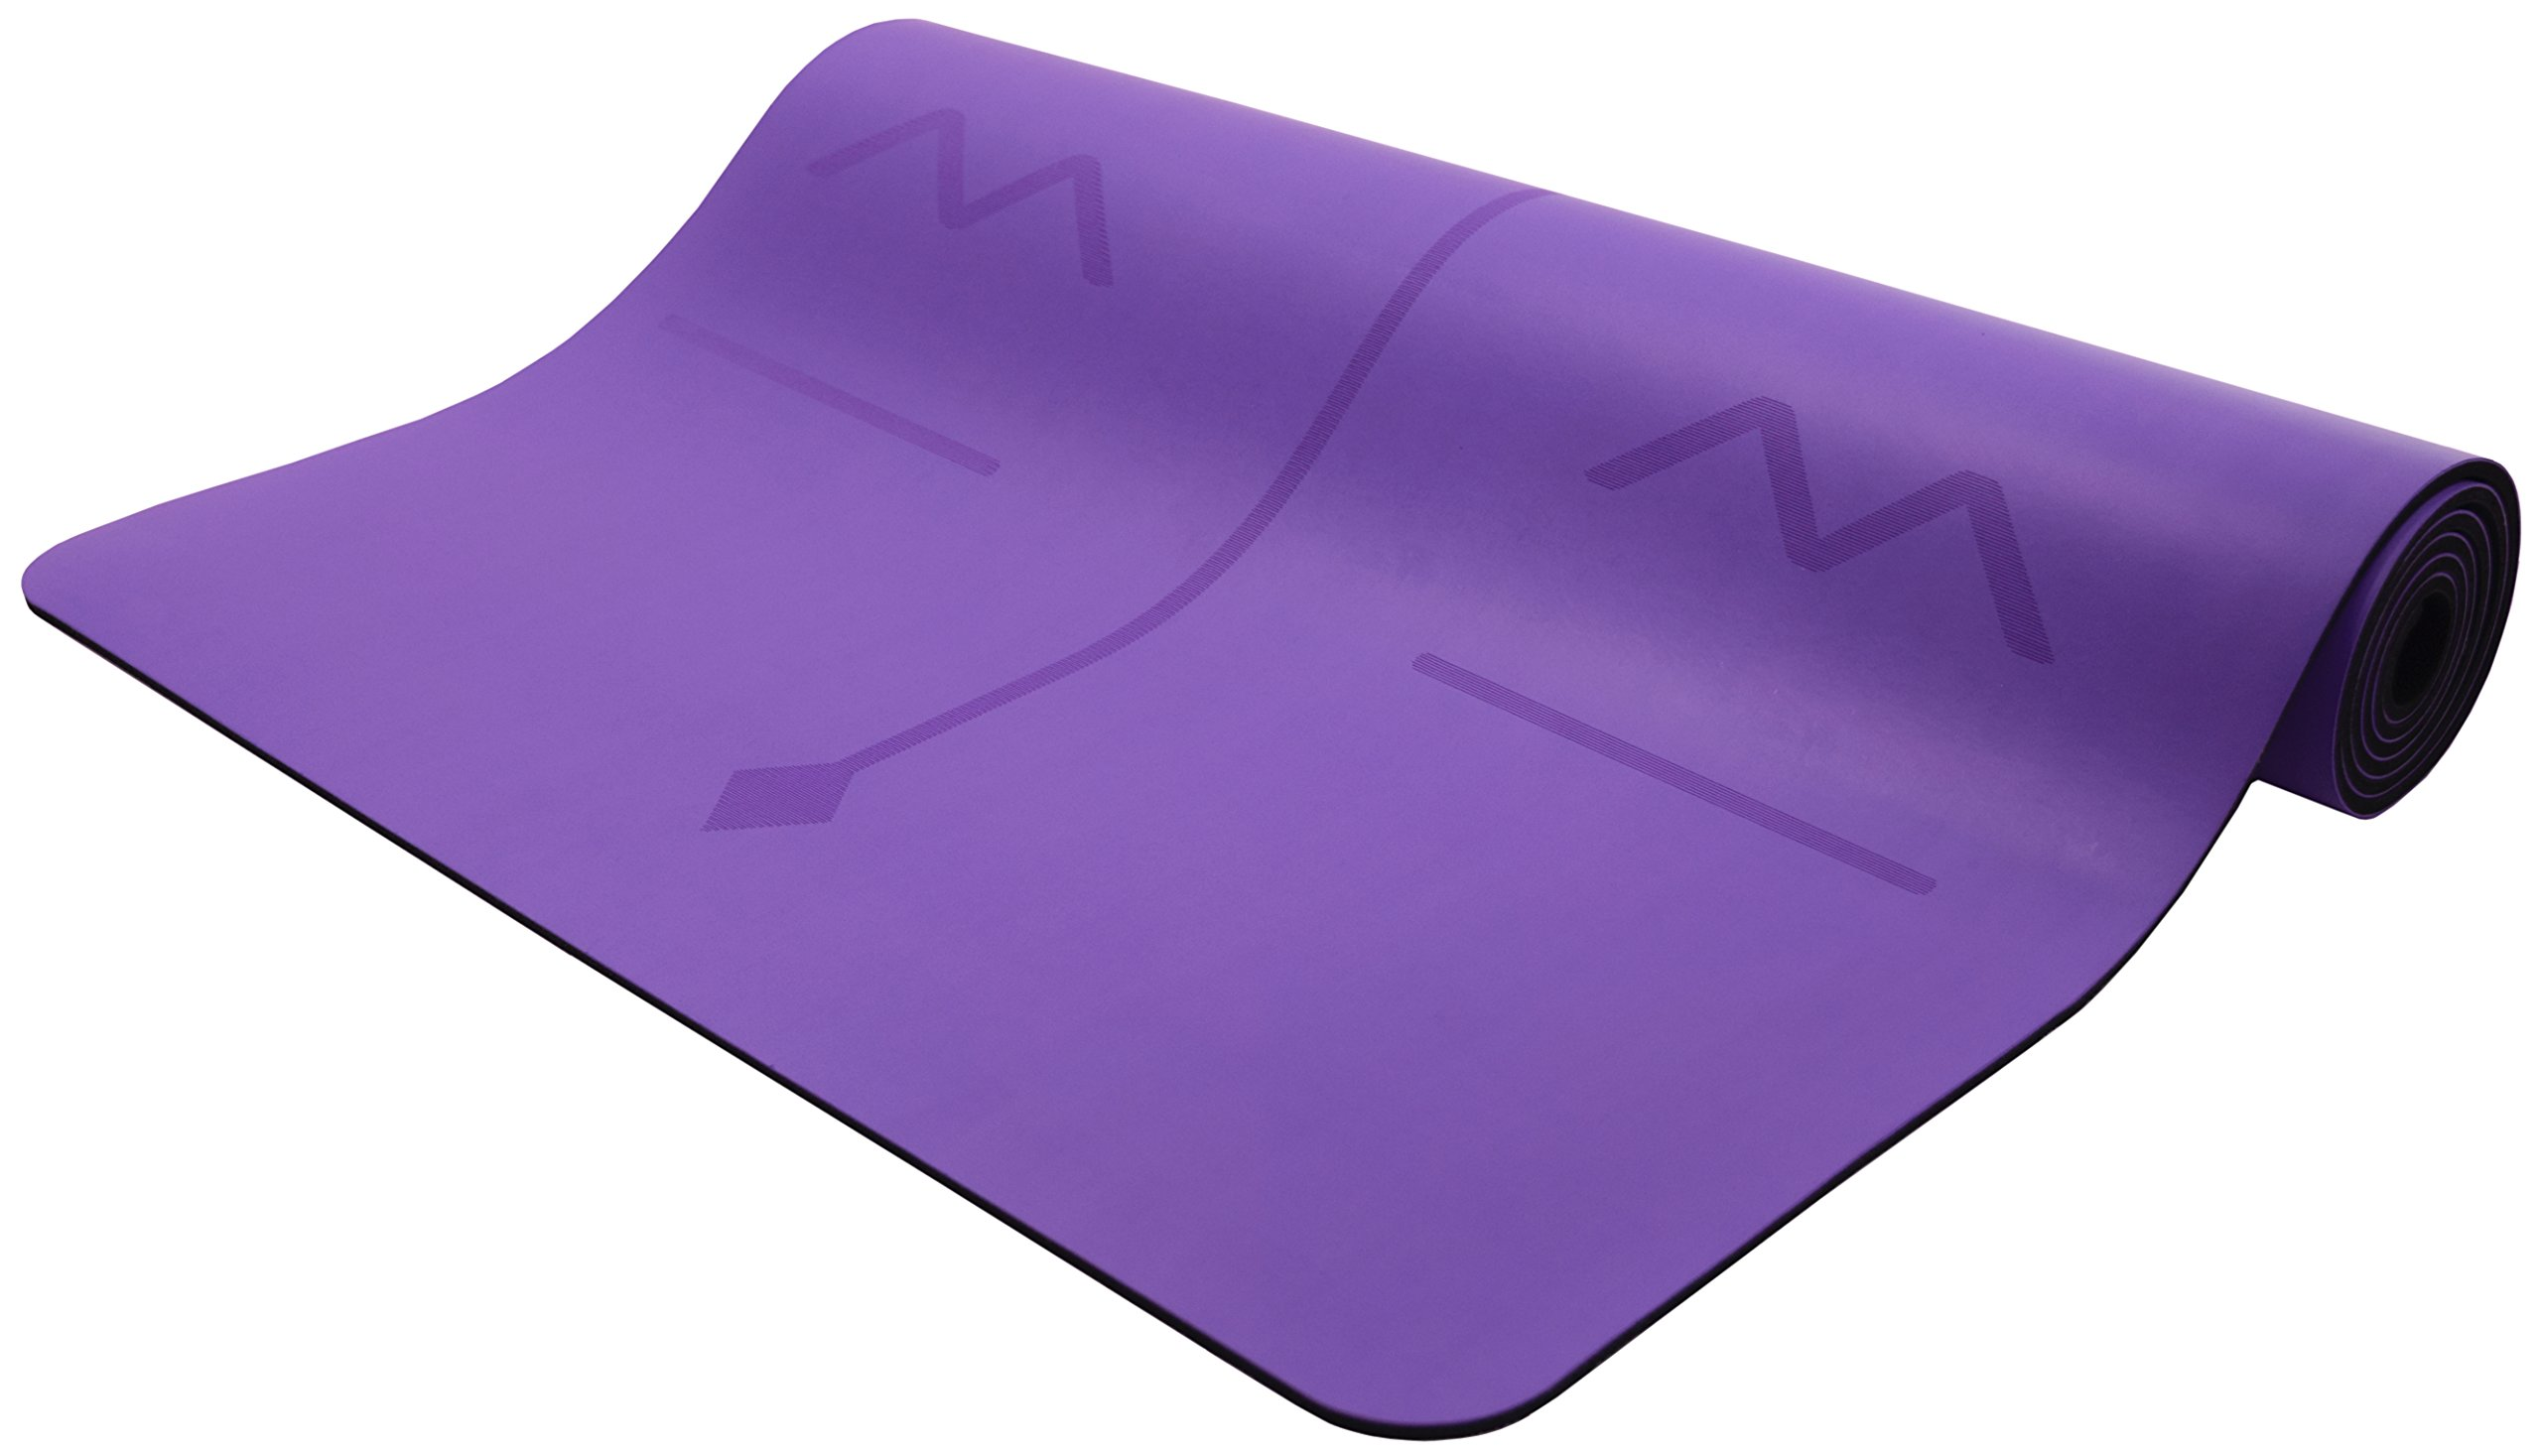 Bean Products Purple Original OMphibian Yoga Mat with Laser Etched Alignment Lines – The Best Non - Slip (Wet or Dry) Eco-Friendly Natural Rubber Base Yoga Mat with Laser Etched Alignment Lines from